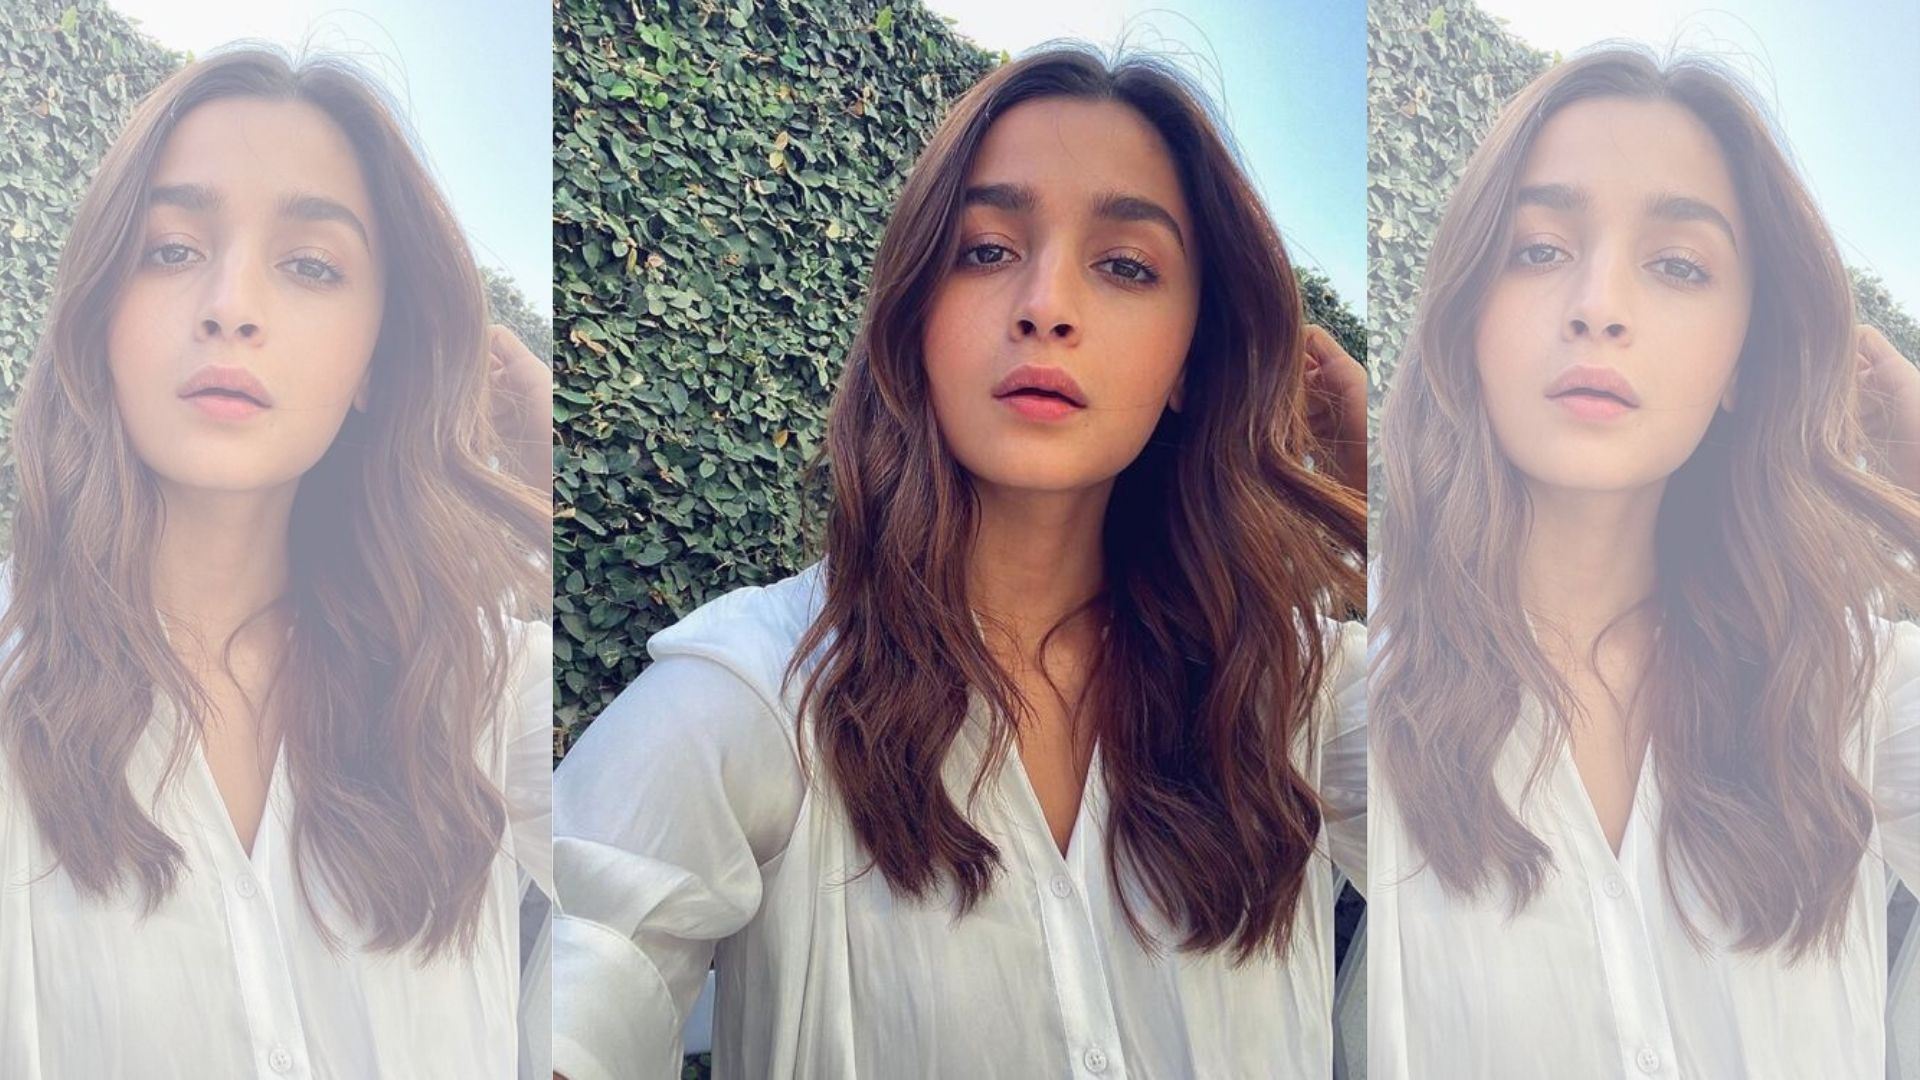 COVID-19 Lockdown: Guess Which Online Course Alia Bhatt Is Doing?